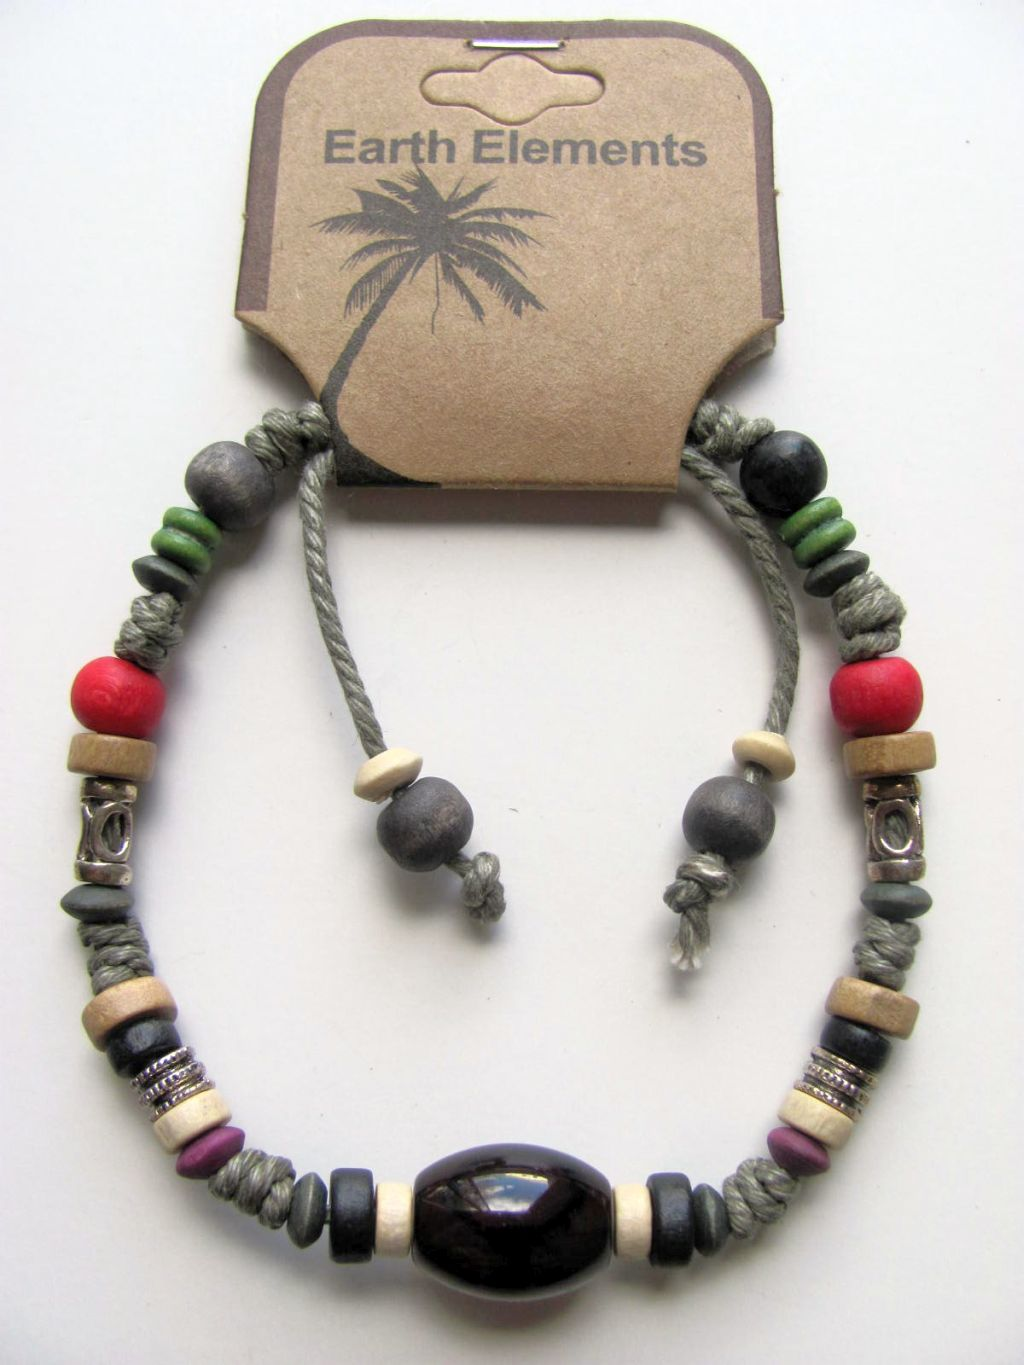 Panama Earth Elements Spiritual Beaded Bracelet, Beach Surfer Men's Jewelry